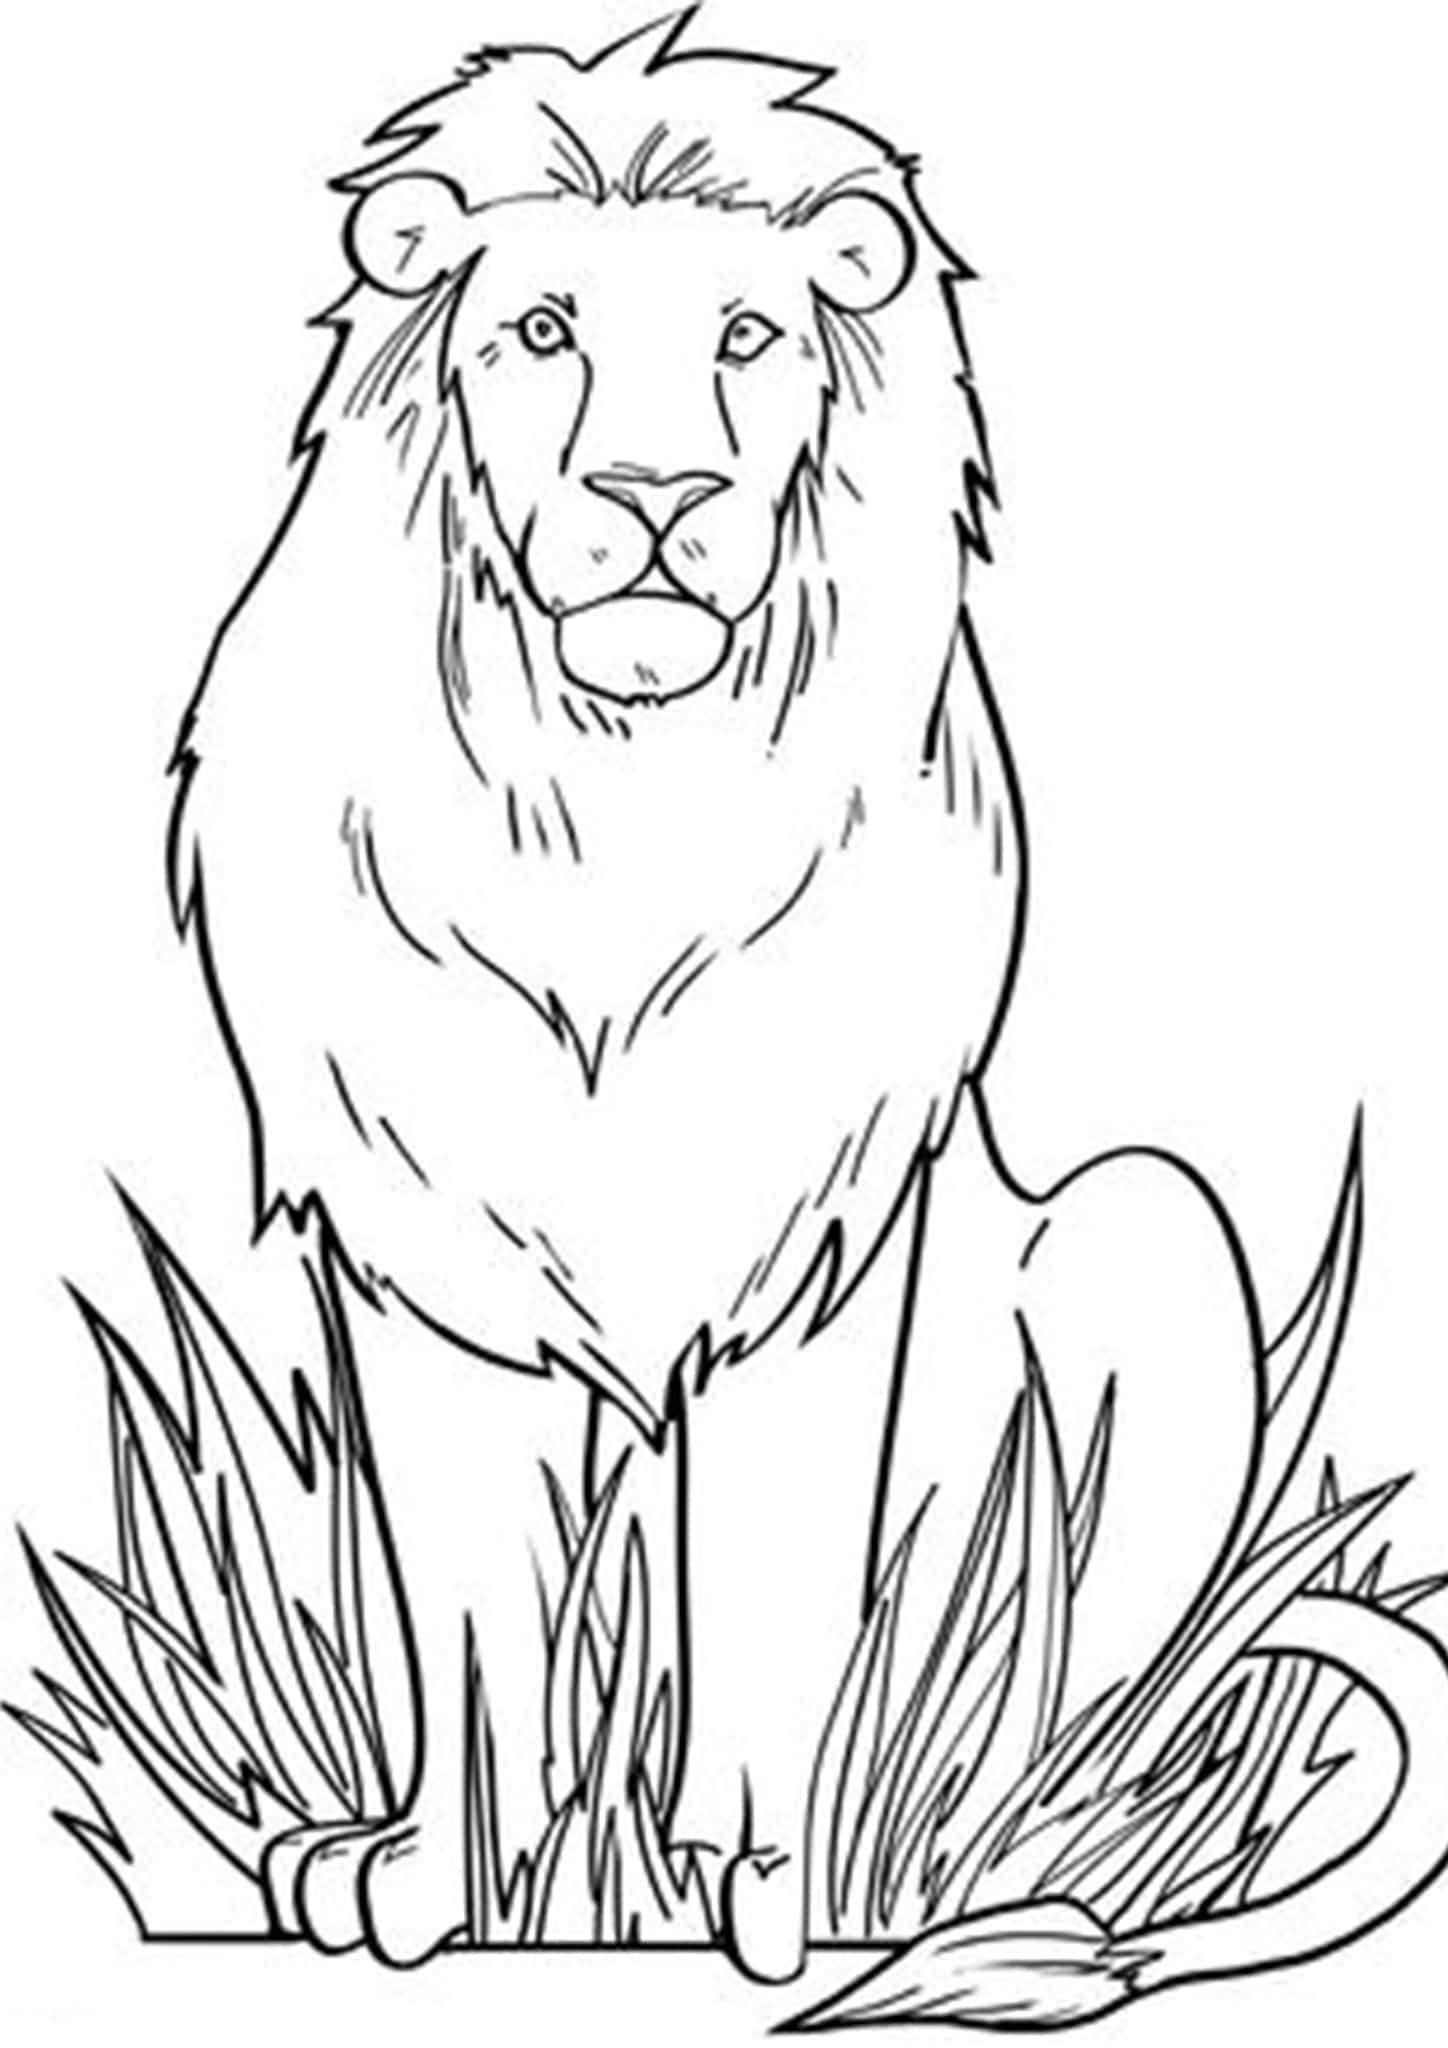 printable pictures of lions free easy to print lion coloring pages tulamama printable lions pictures of